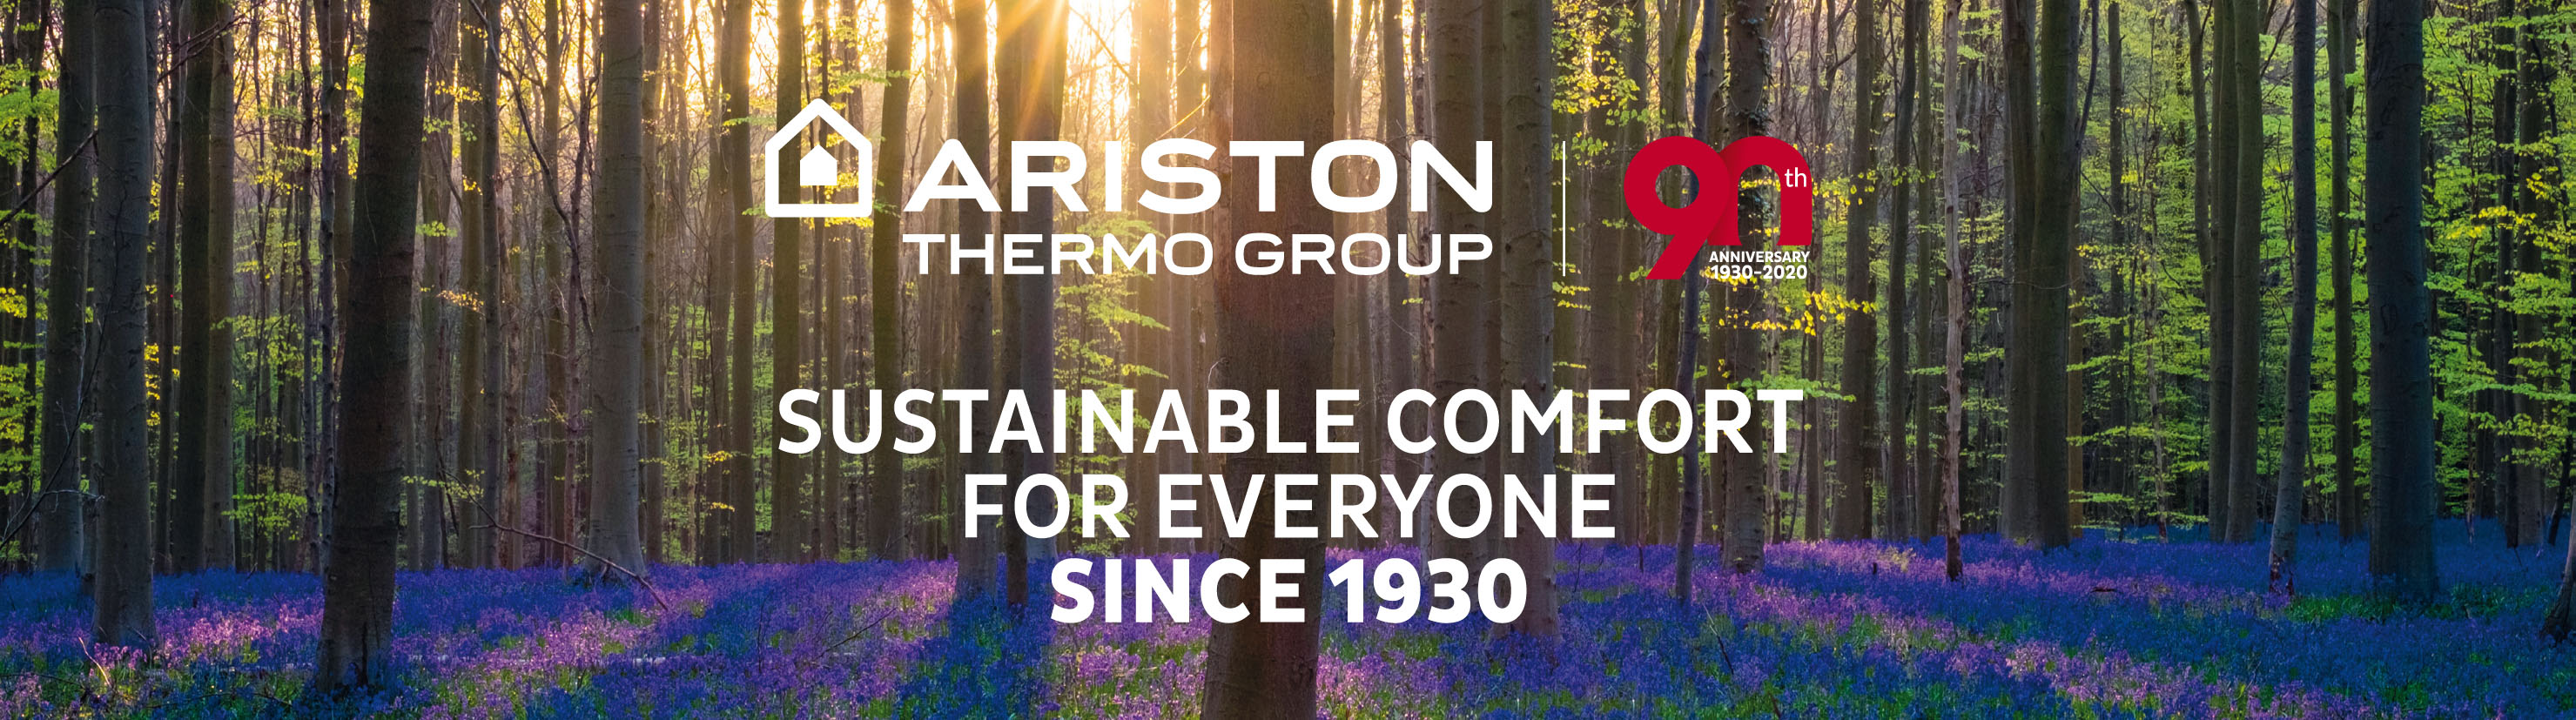 Elco Burners 90° Anniversario Ariston Thermo Group